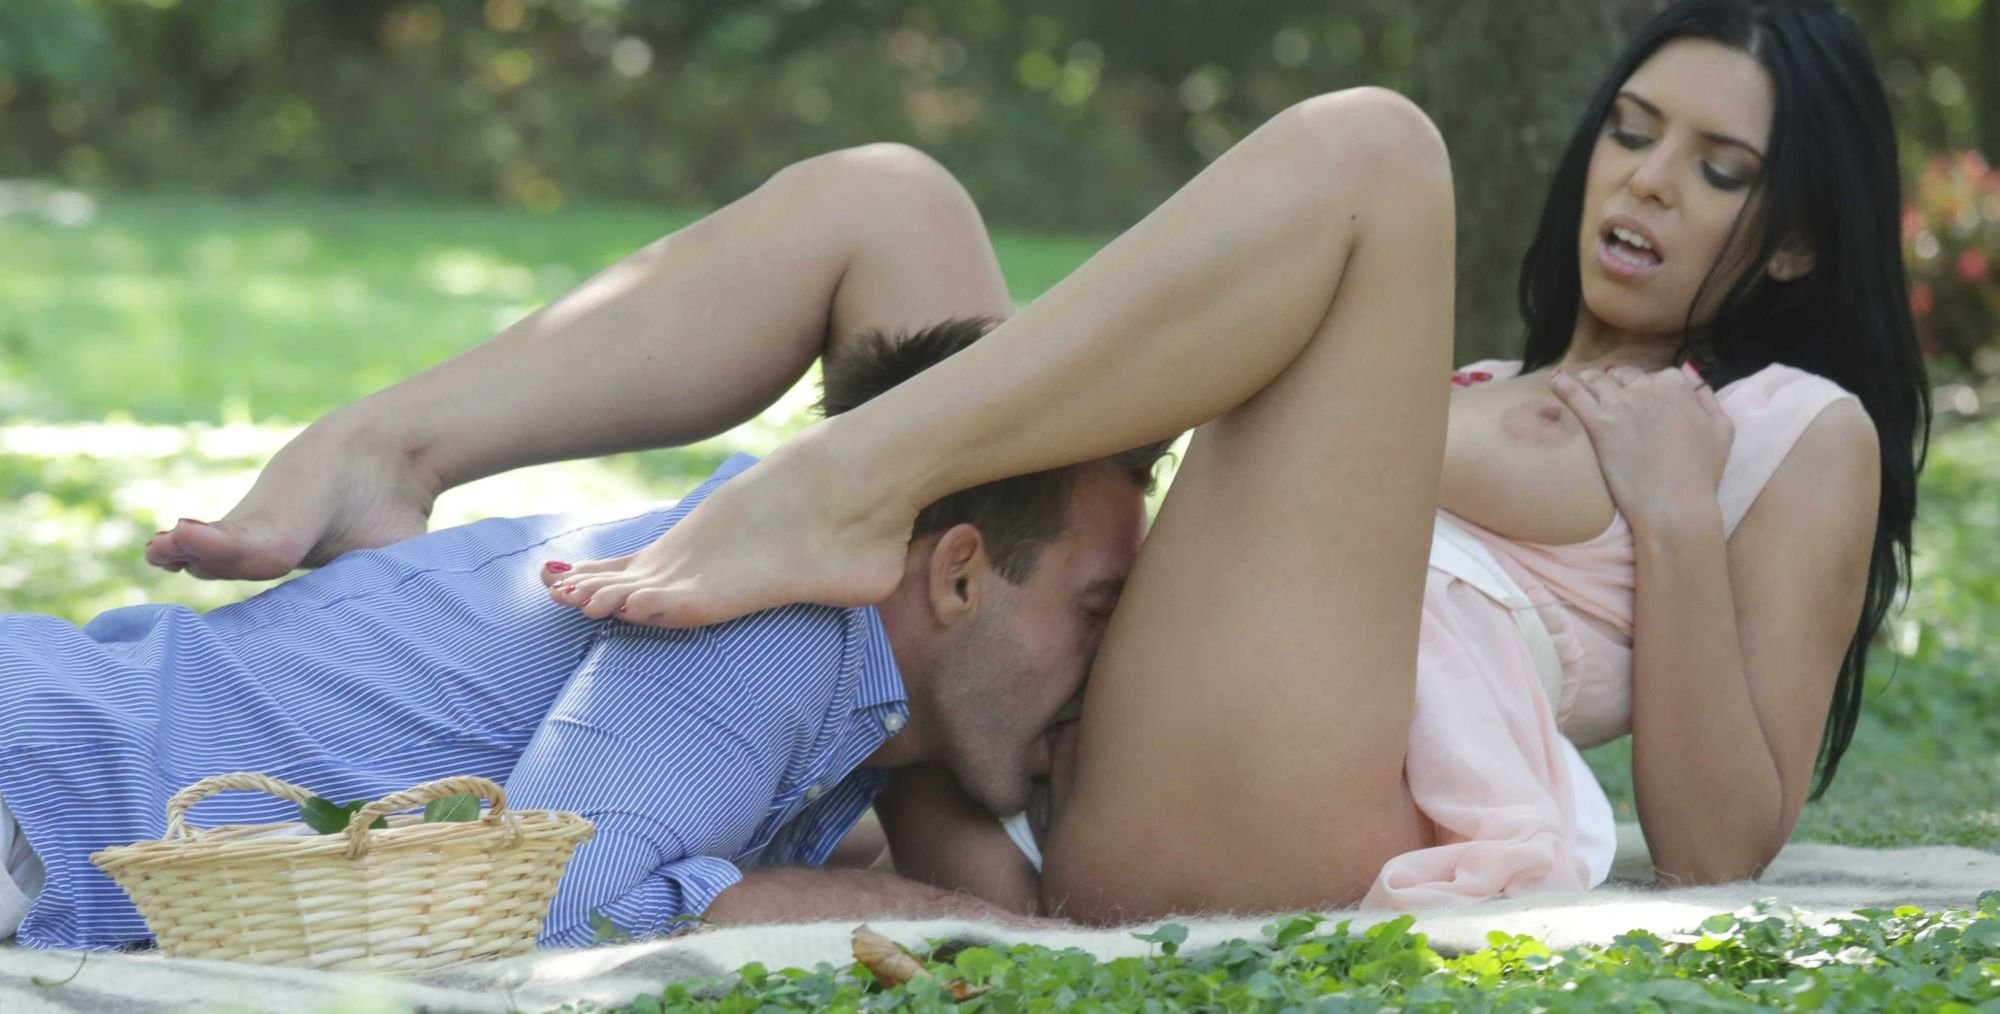 Jessica roberts webcams xxx White wife impregnated by black lover